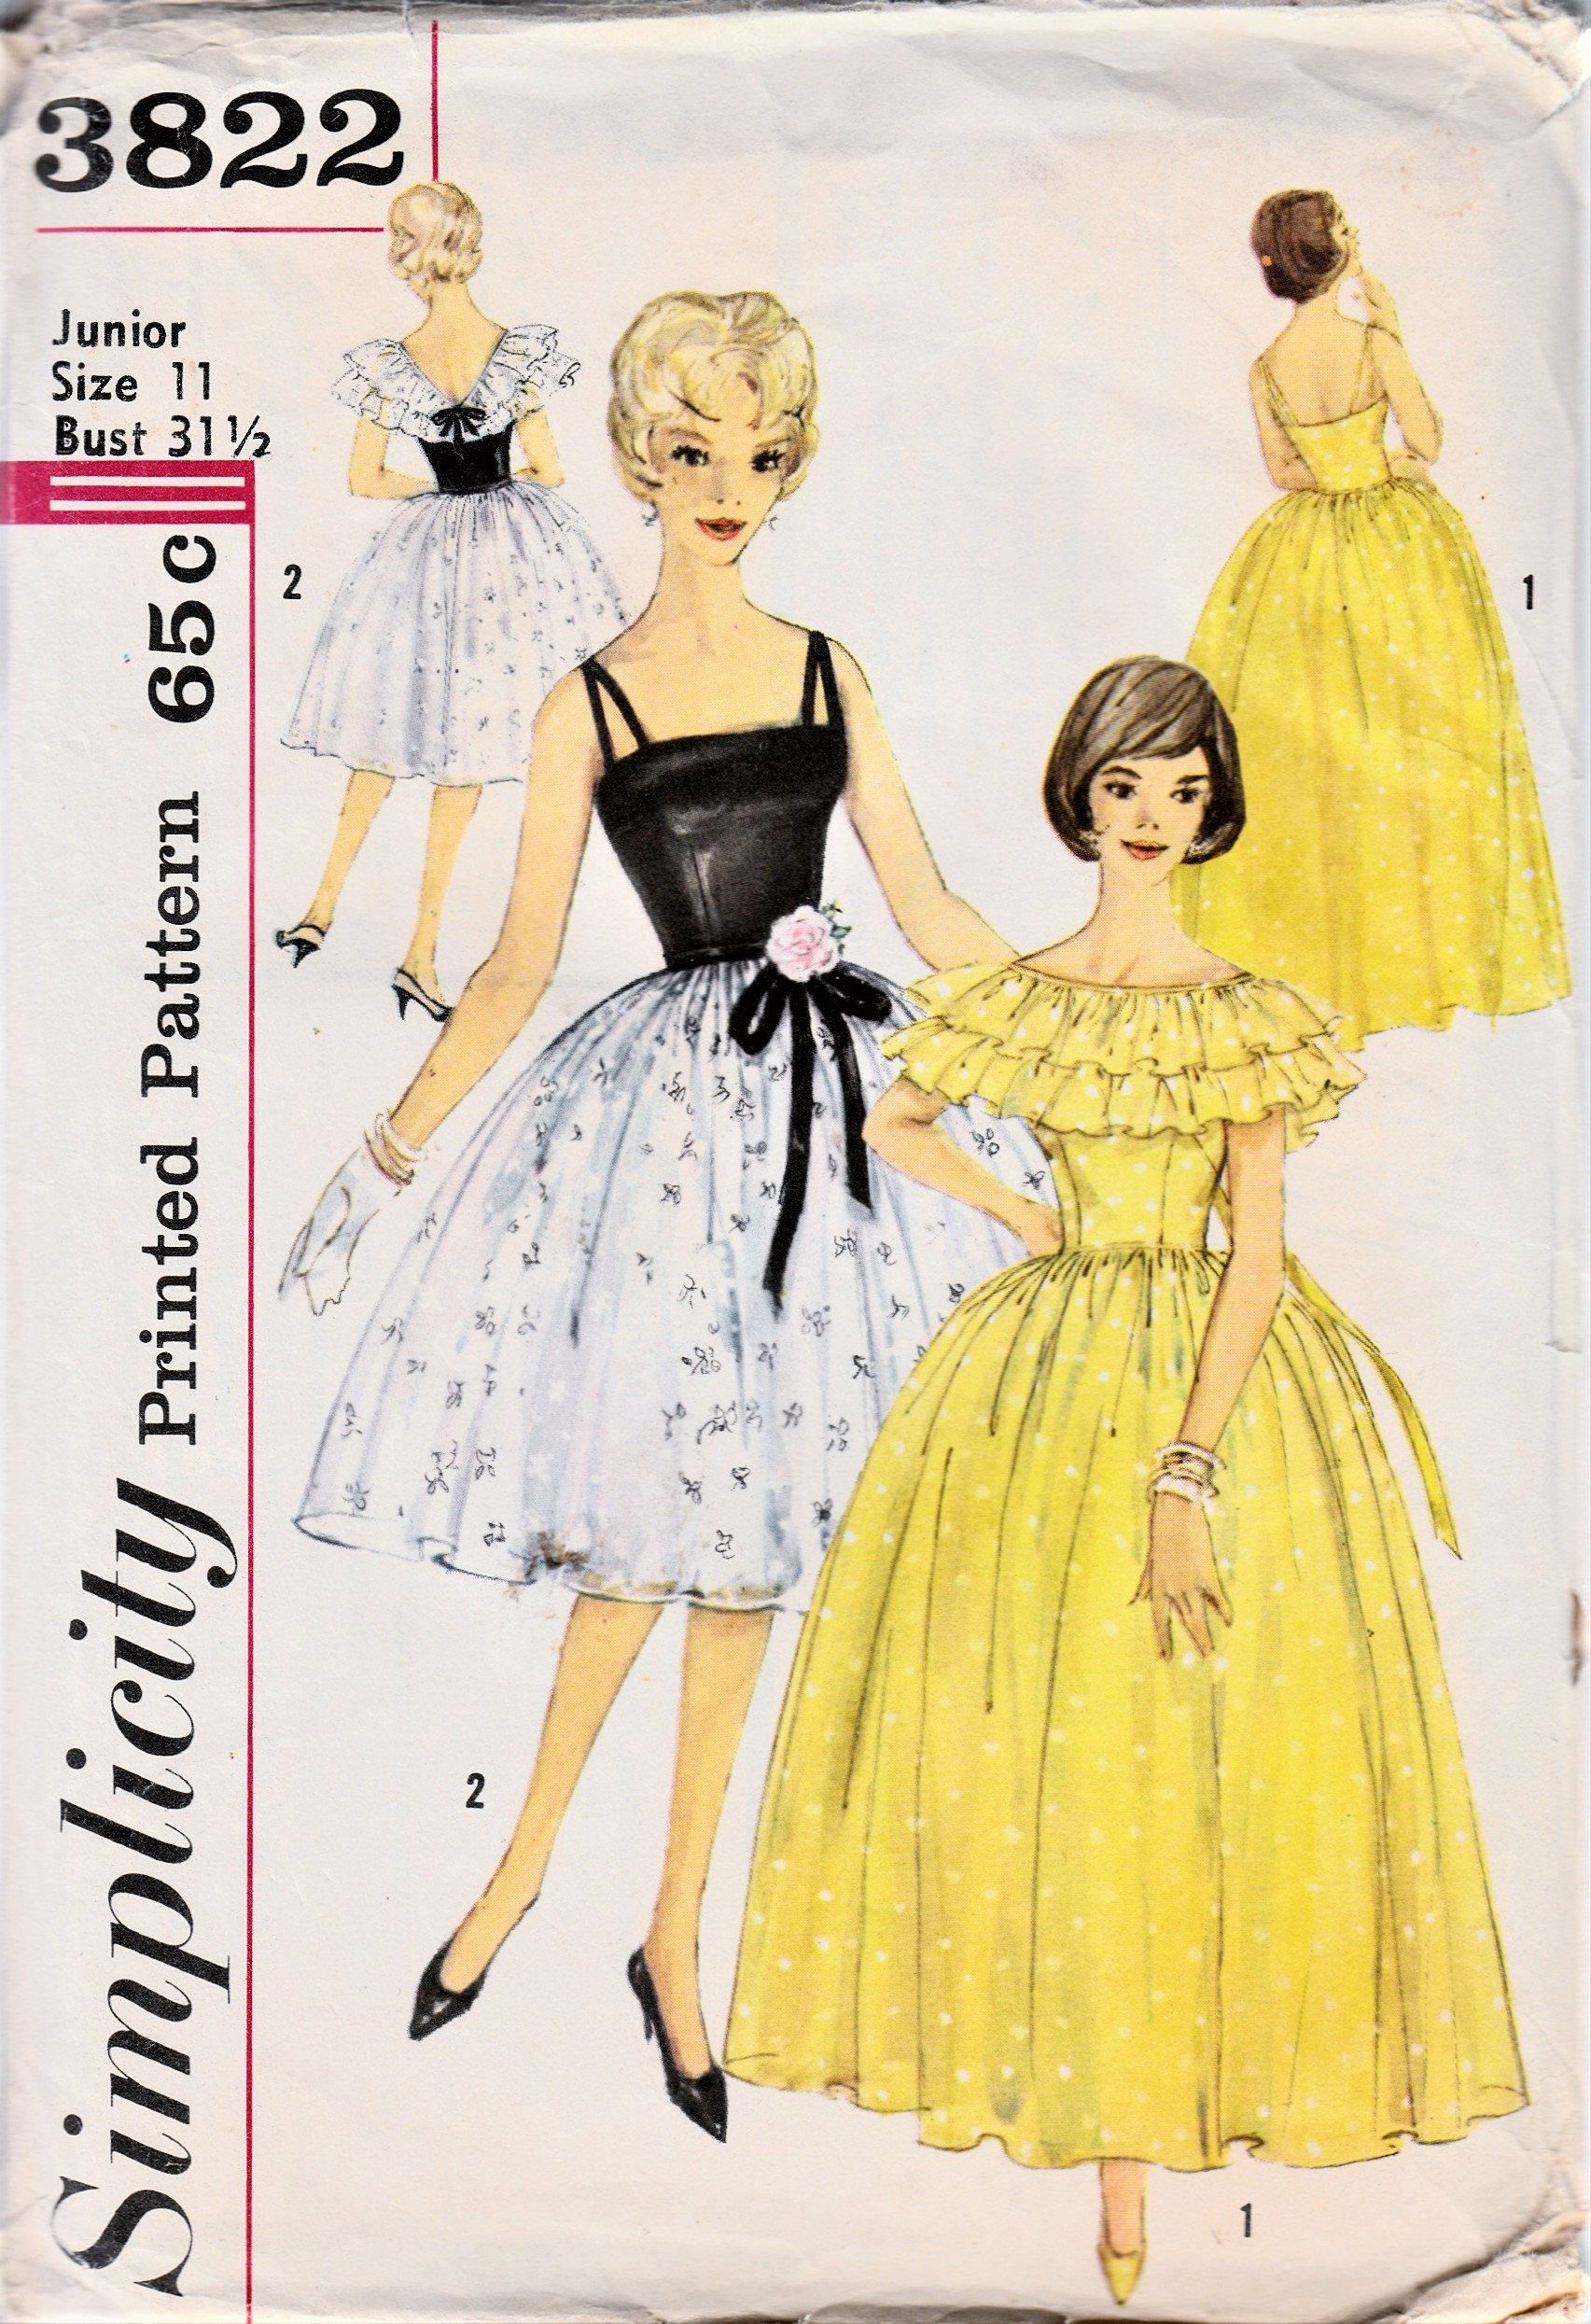 1960s Party Dress Sewing Pattern Ruffled Capelet Bouffant Etsy Gown Sewing Pattern Evening Dress Patterns Sewing Dresses [ 2490 x 1705 Pixel ]